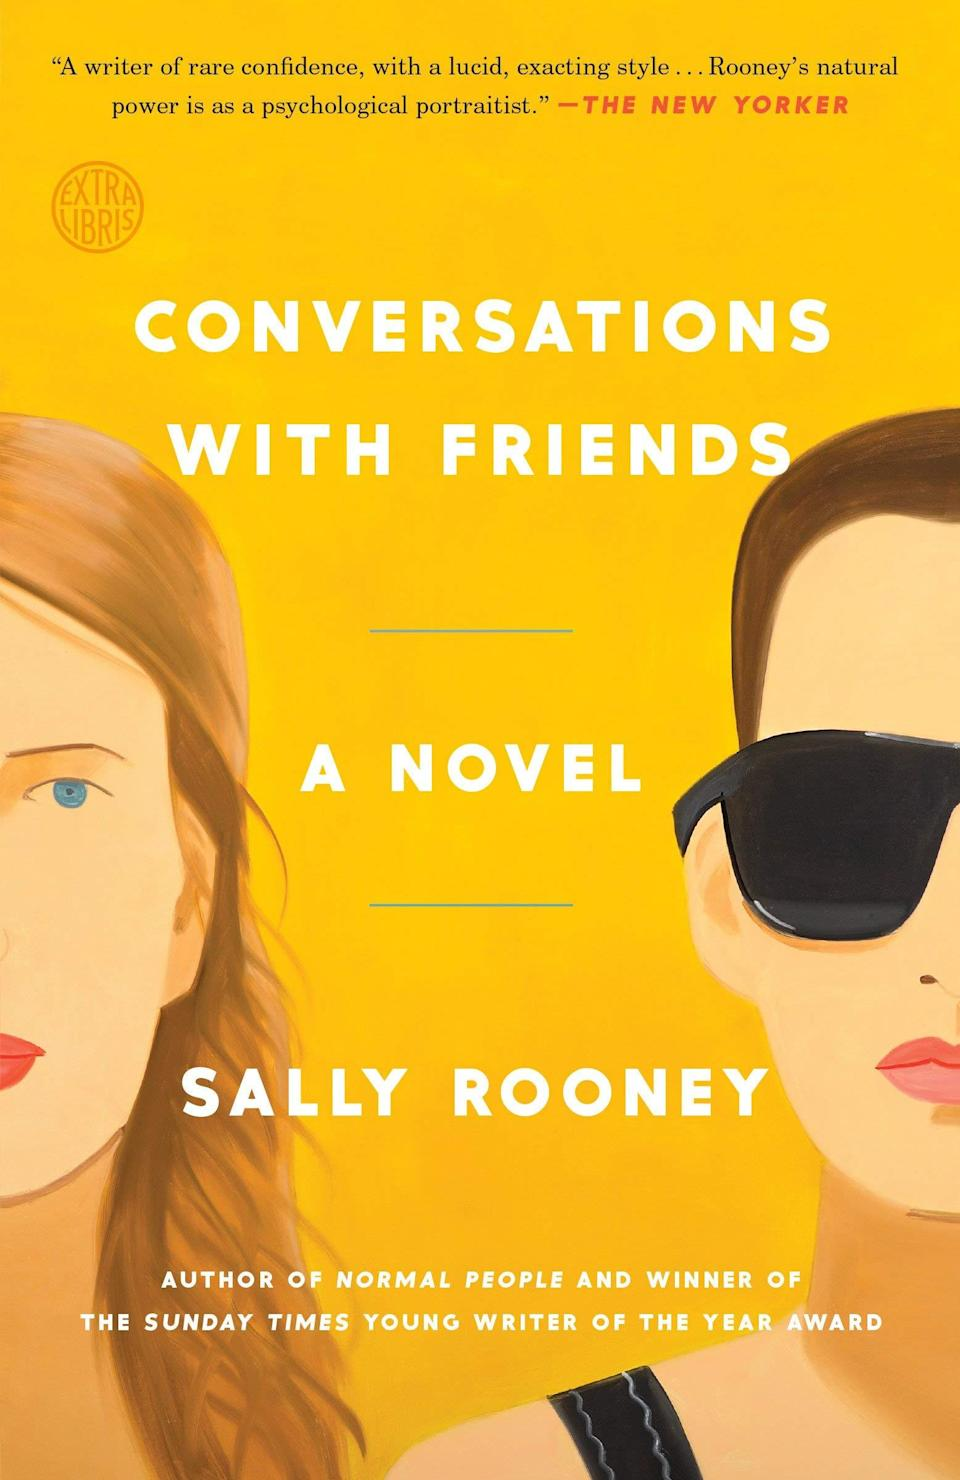 "Which one are they: a Bobbi or a Frances? <br><br><strong>Hogarth</strong> Conversations with Friends: A Novel by Sally Rooney, $, available at <a href=""https://www.amazon.com/Conversations-Friends-Novel-Sally-Rooney/dp/0451499069/ref=pd_sbs_14_2/132-7150530-6651729"" rel=""nofollow noopener"" target=""_blank"" data-ylk=""slk:Amazon"" class=""link rapid-noclick-resp"">Amazon</a>"